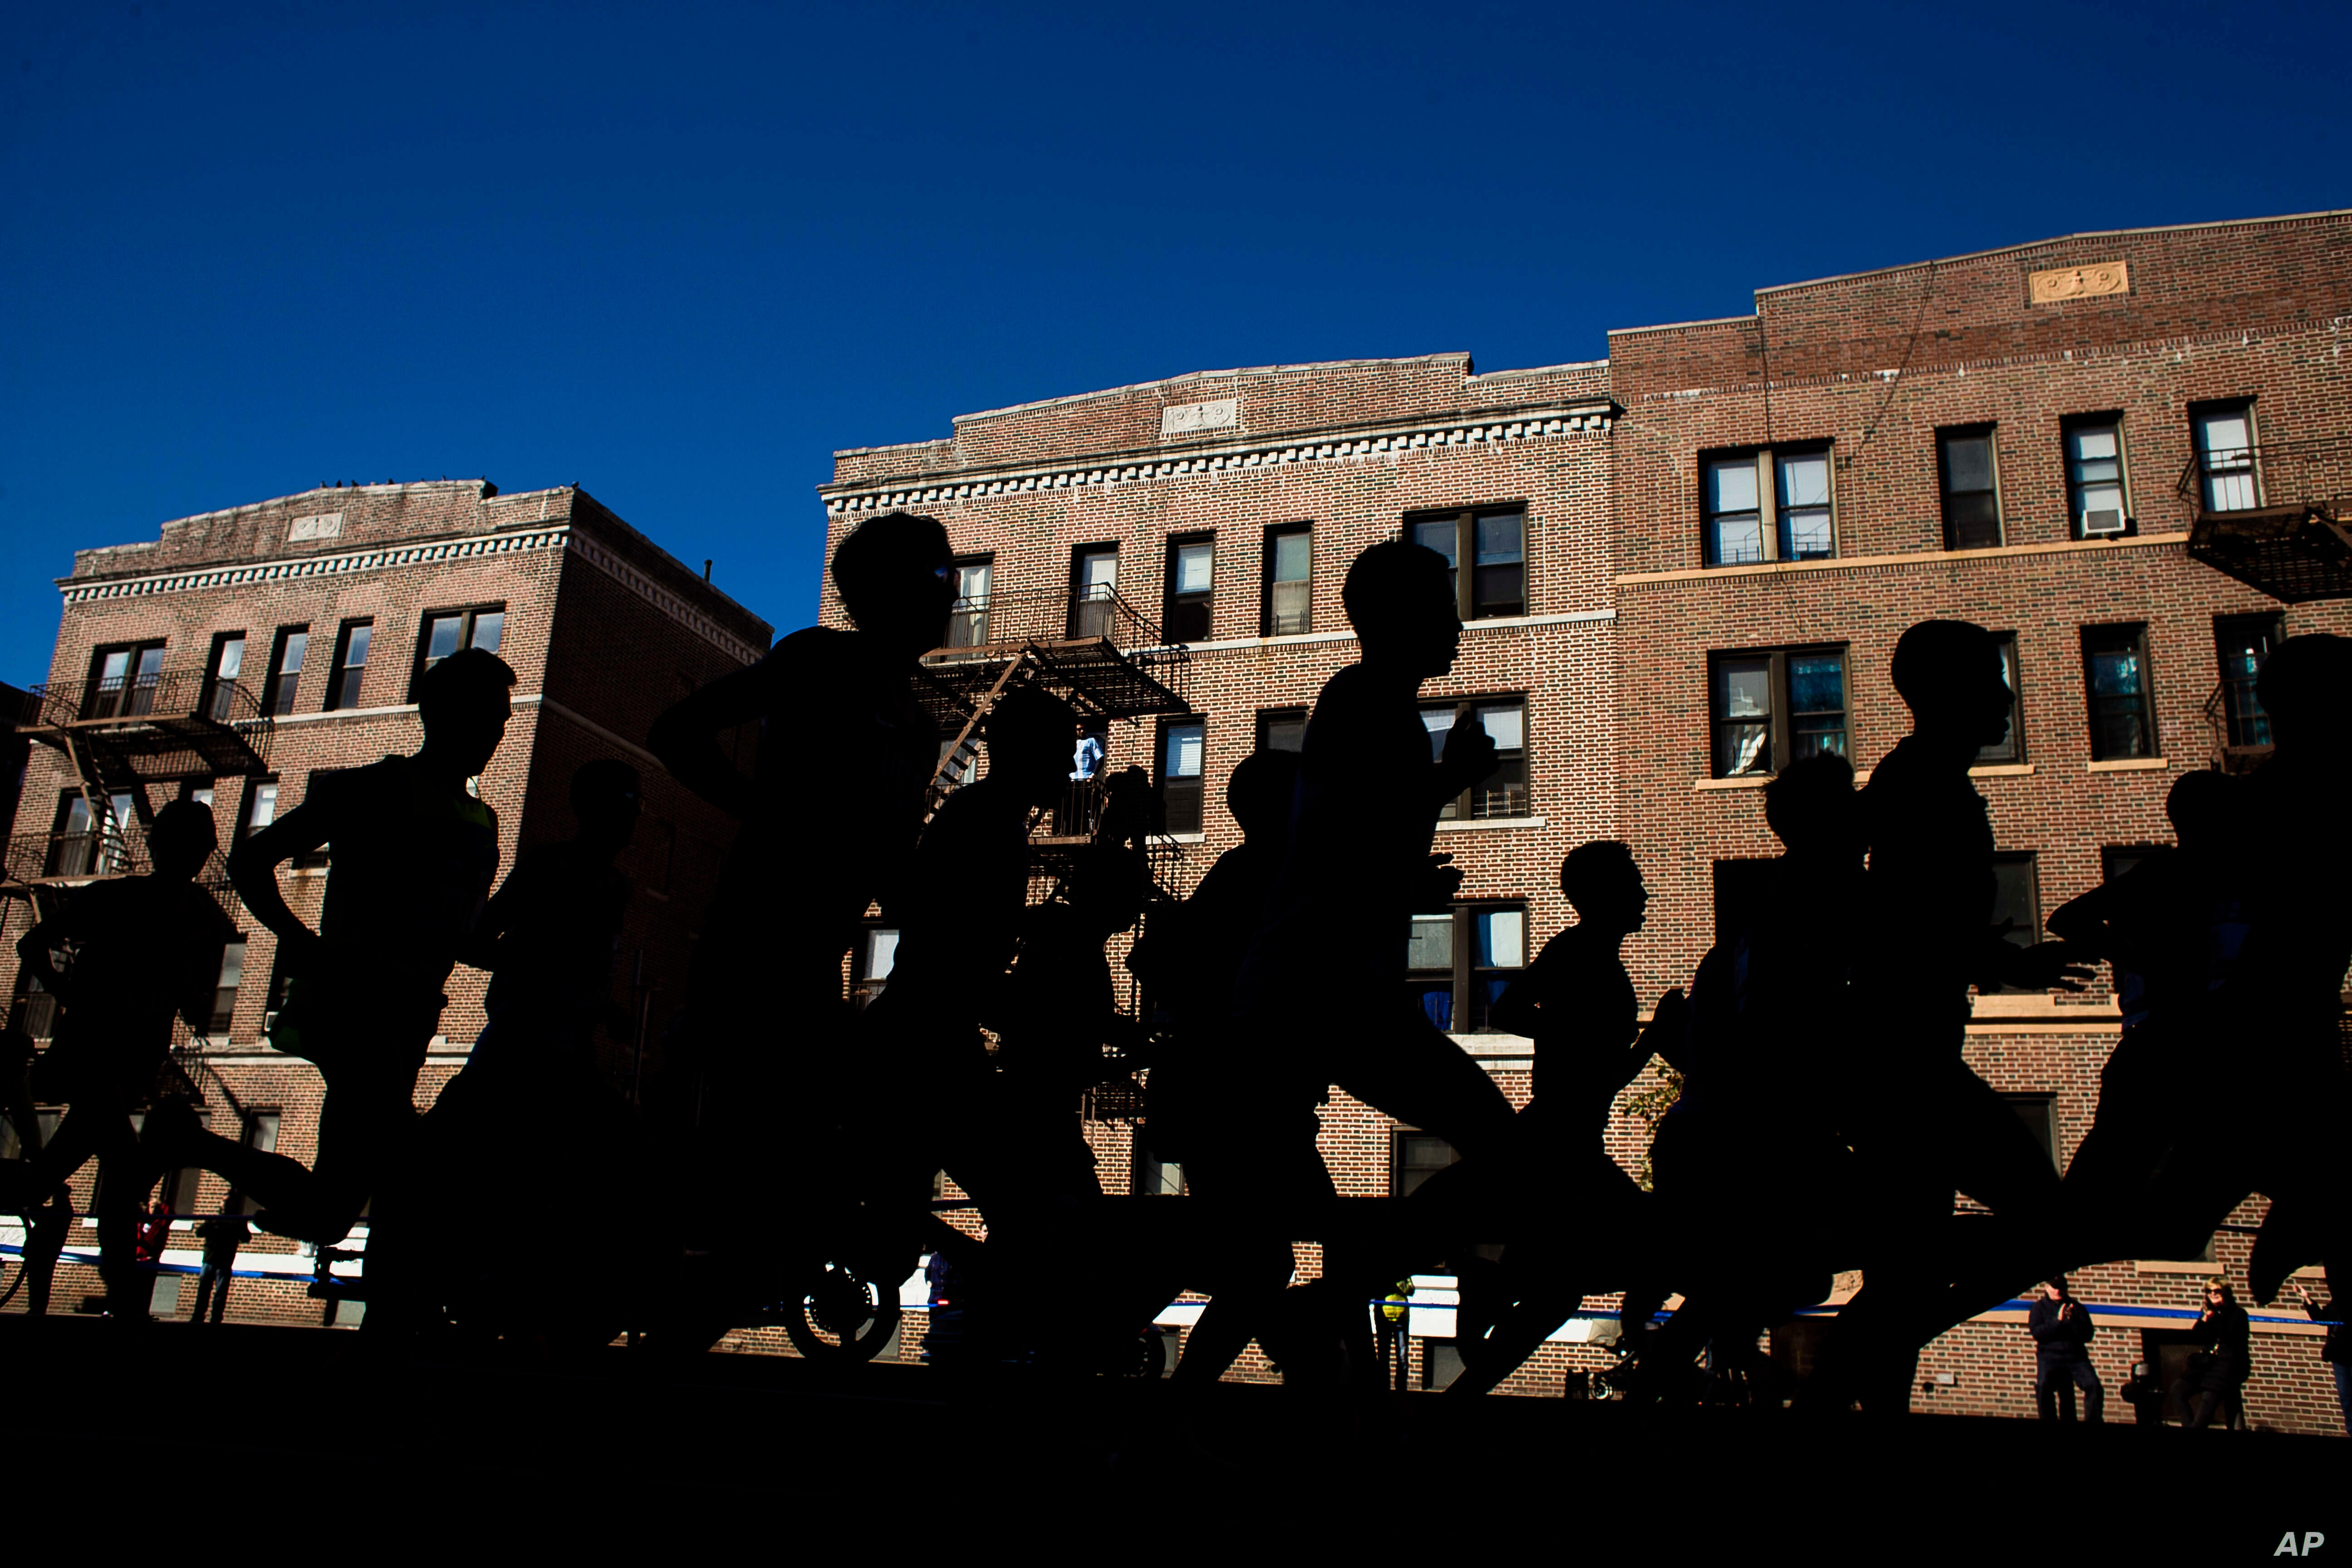 Runners move along 4th Avenue in the Brooklyn borough of New York during the New York City Marathon on Sunday, Nov. 6, 2016. Worrying about your health can be bad for your health ....